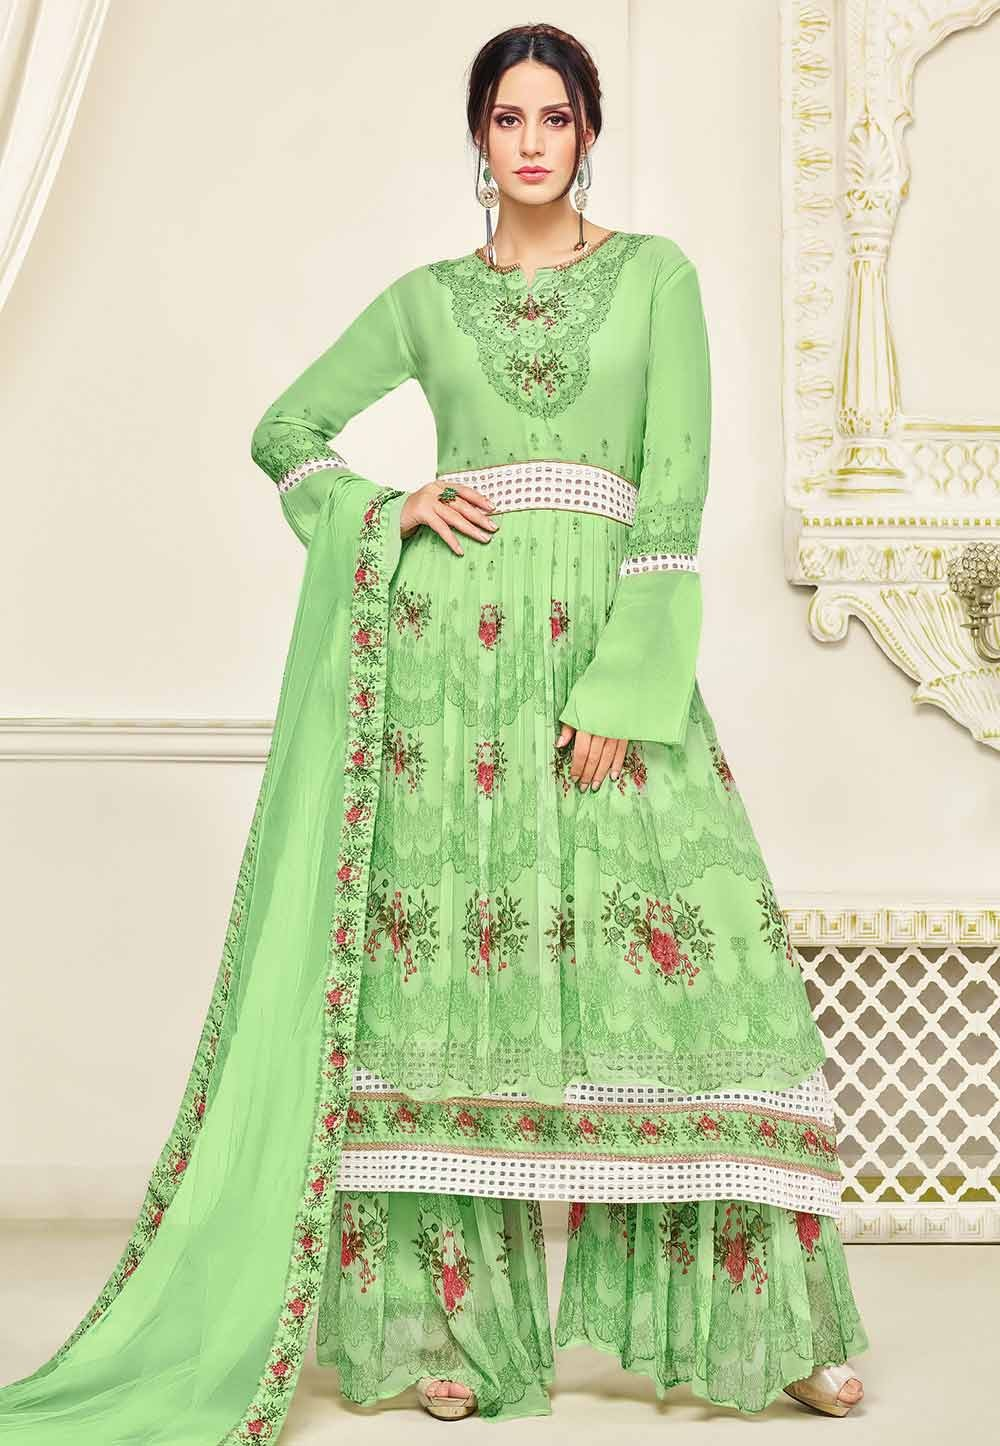 Sharara Style Green Color with Embroidery Work Wonderful Unstitched Salwar Kameez